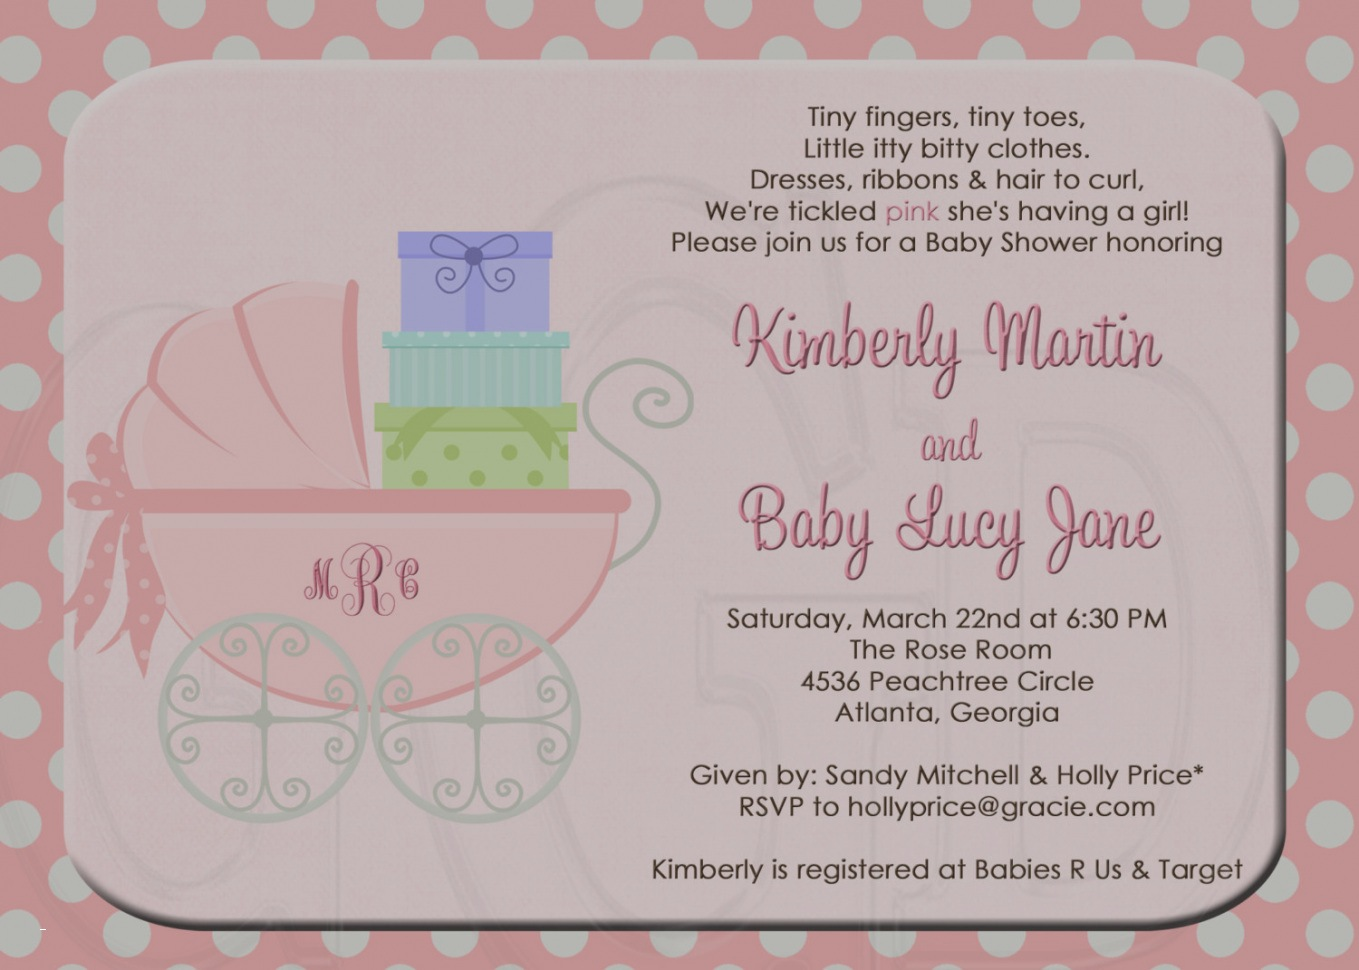 Full Size of Baby Shower:63+ Delightful Cheap Baby Shower Invitations Image Inspirations Cheap Baby Shower Invitations Design Your Own Baby Shower Invitations New Elegant Example Baby Shower Invitations Baby Shower Invitation